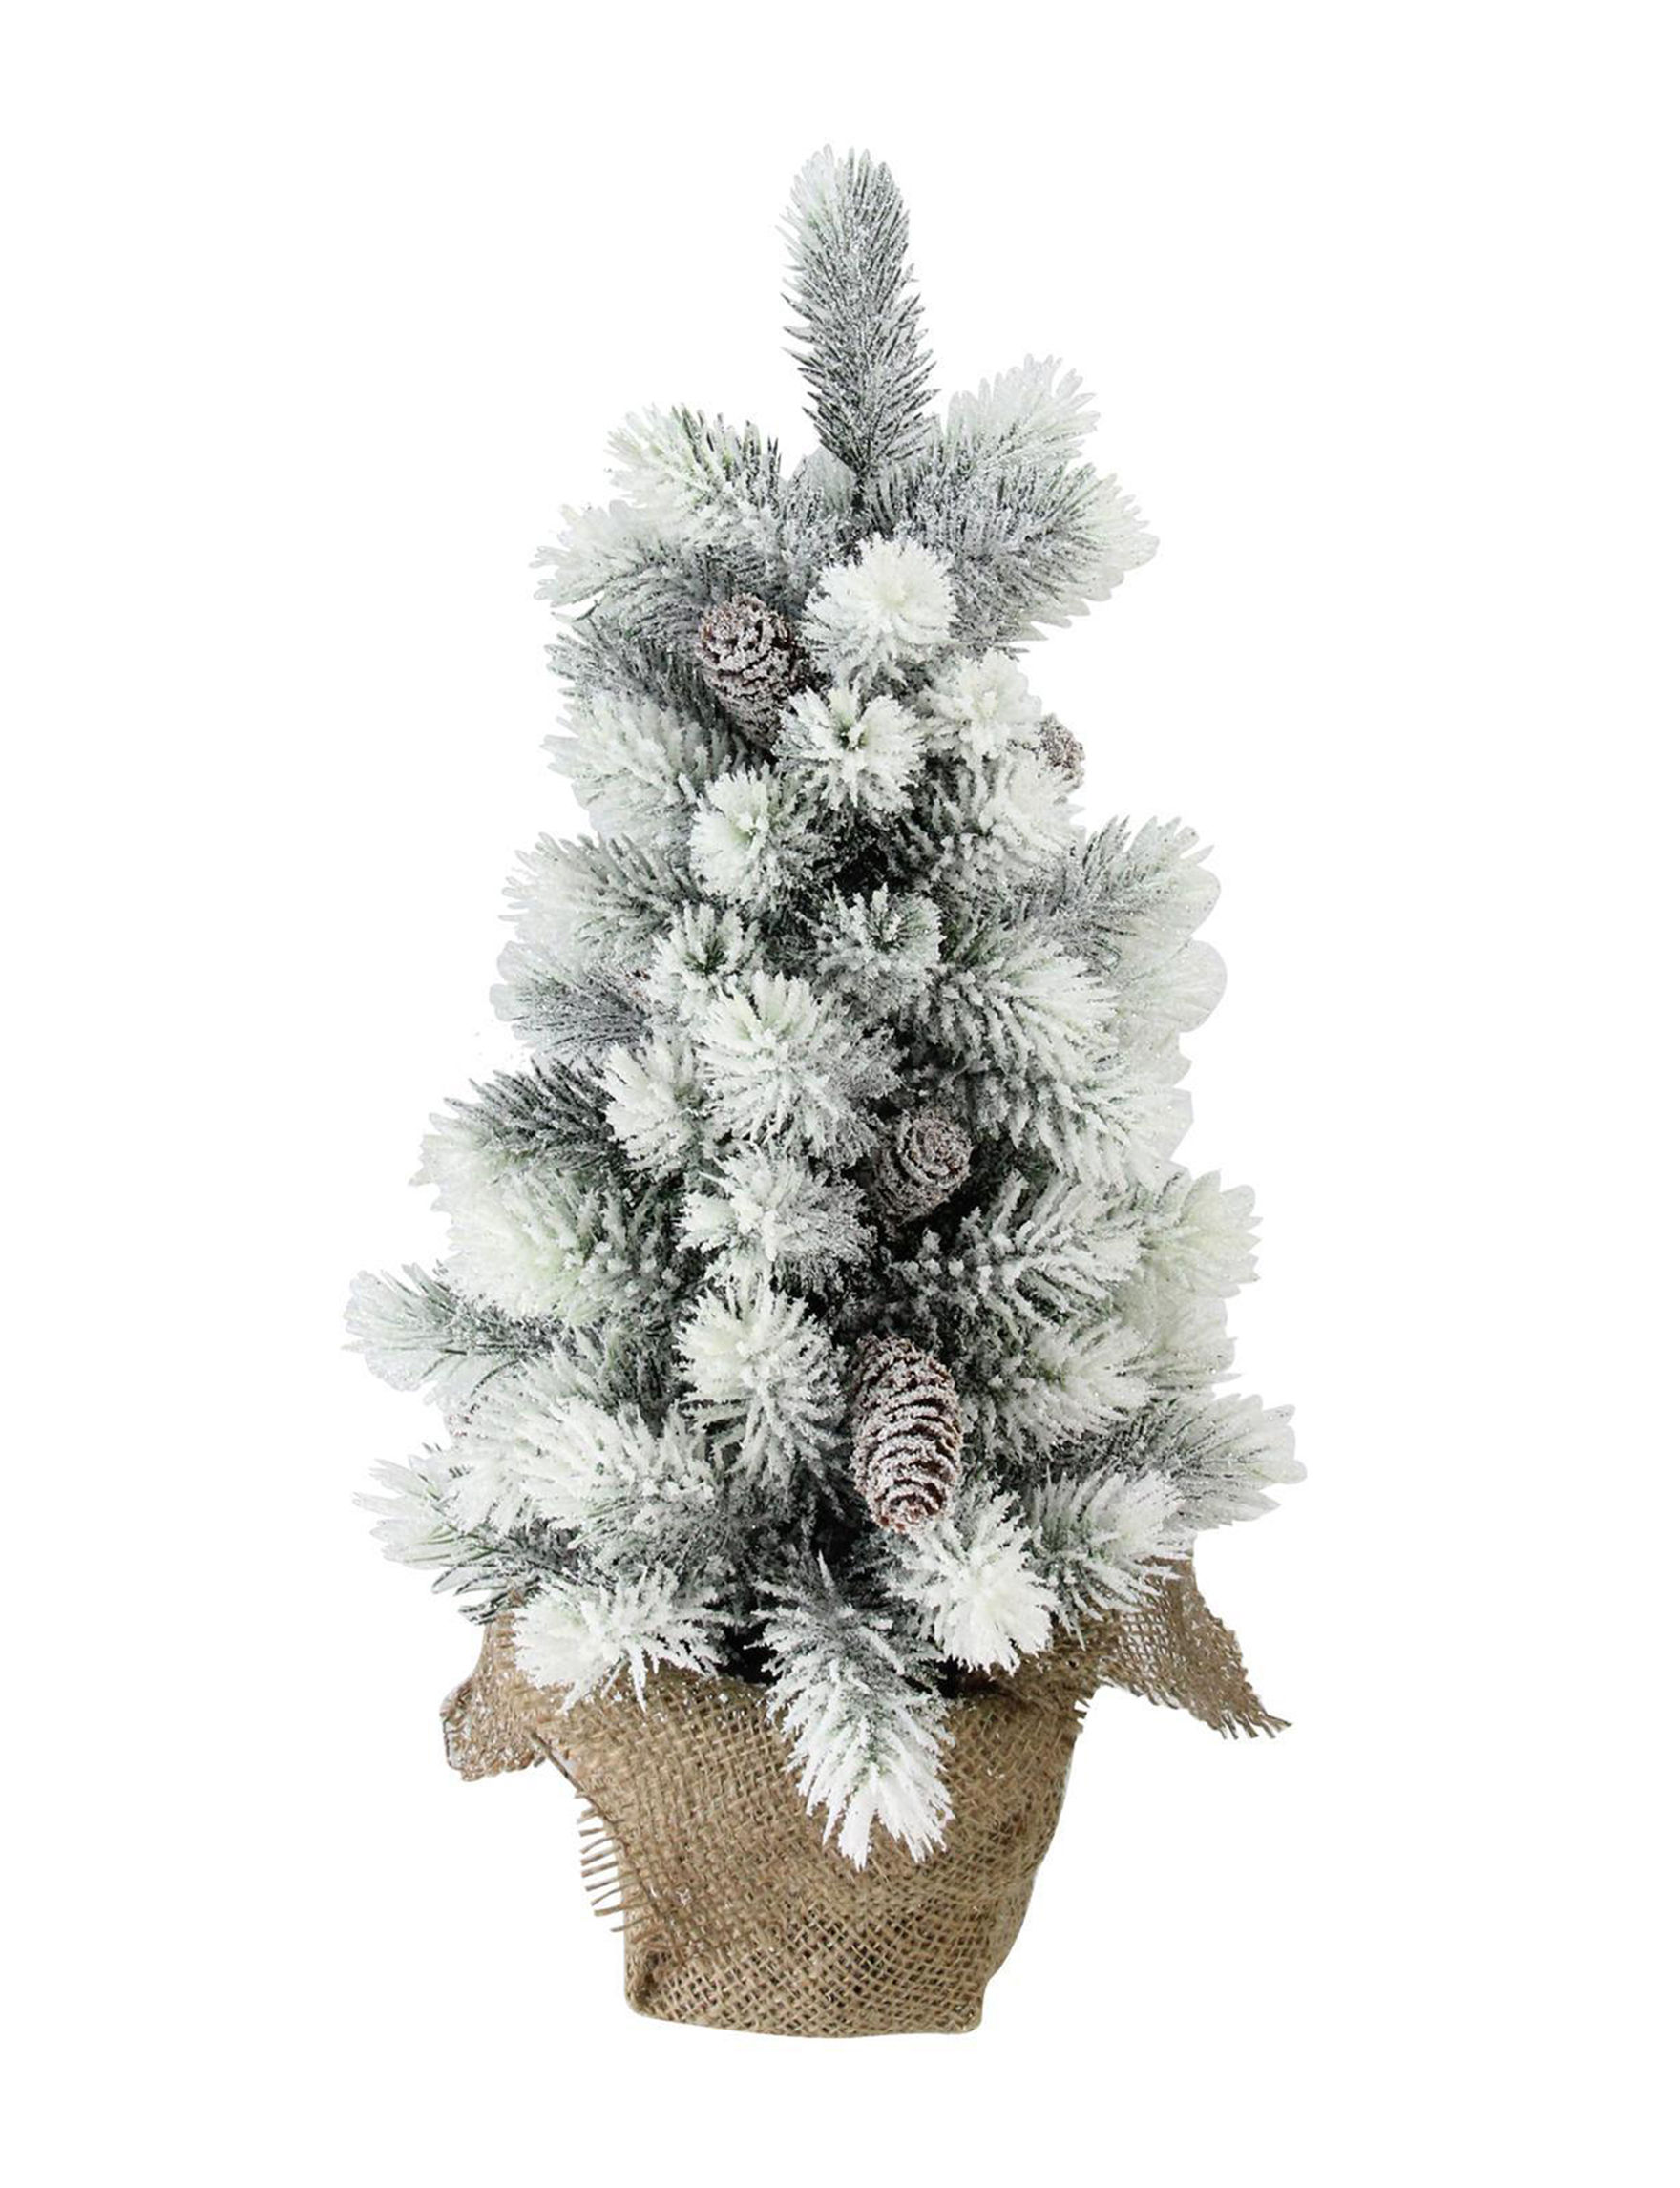 Northlight White / Brown Christmas Trees Decorative Objects Holiday Decor Home Accents